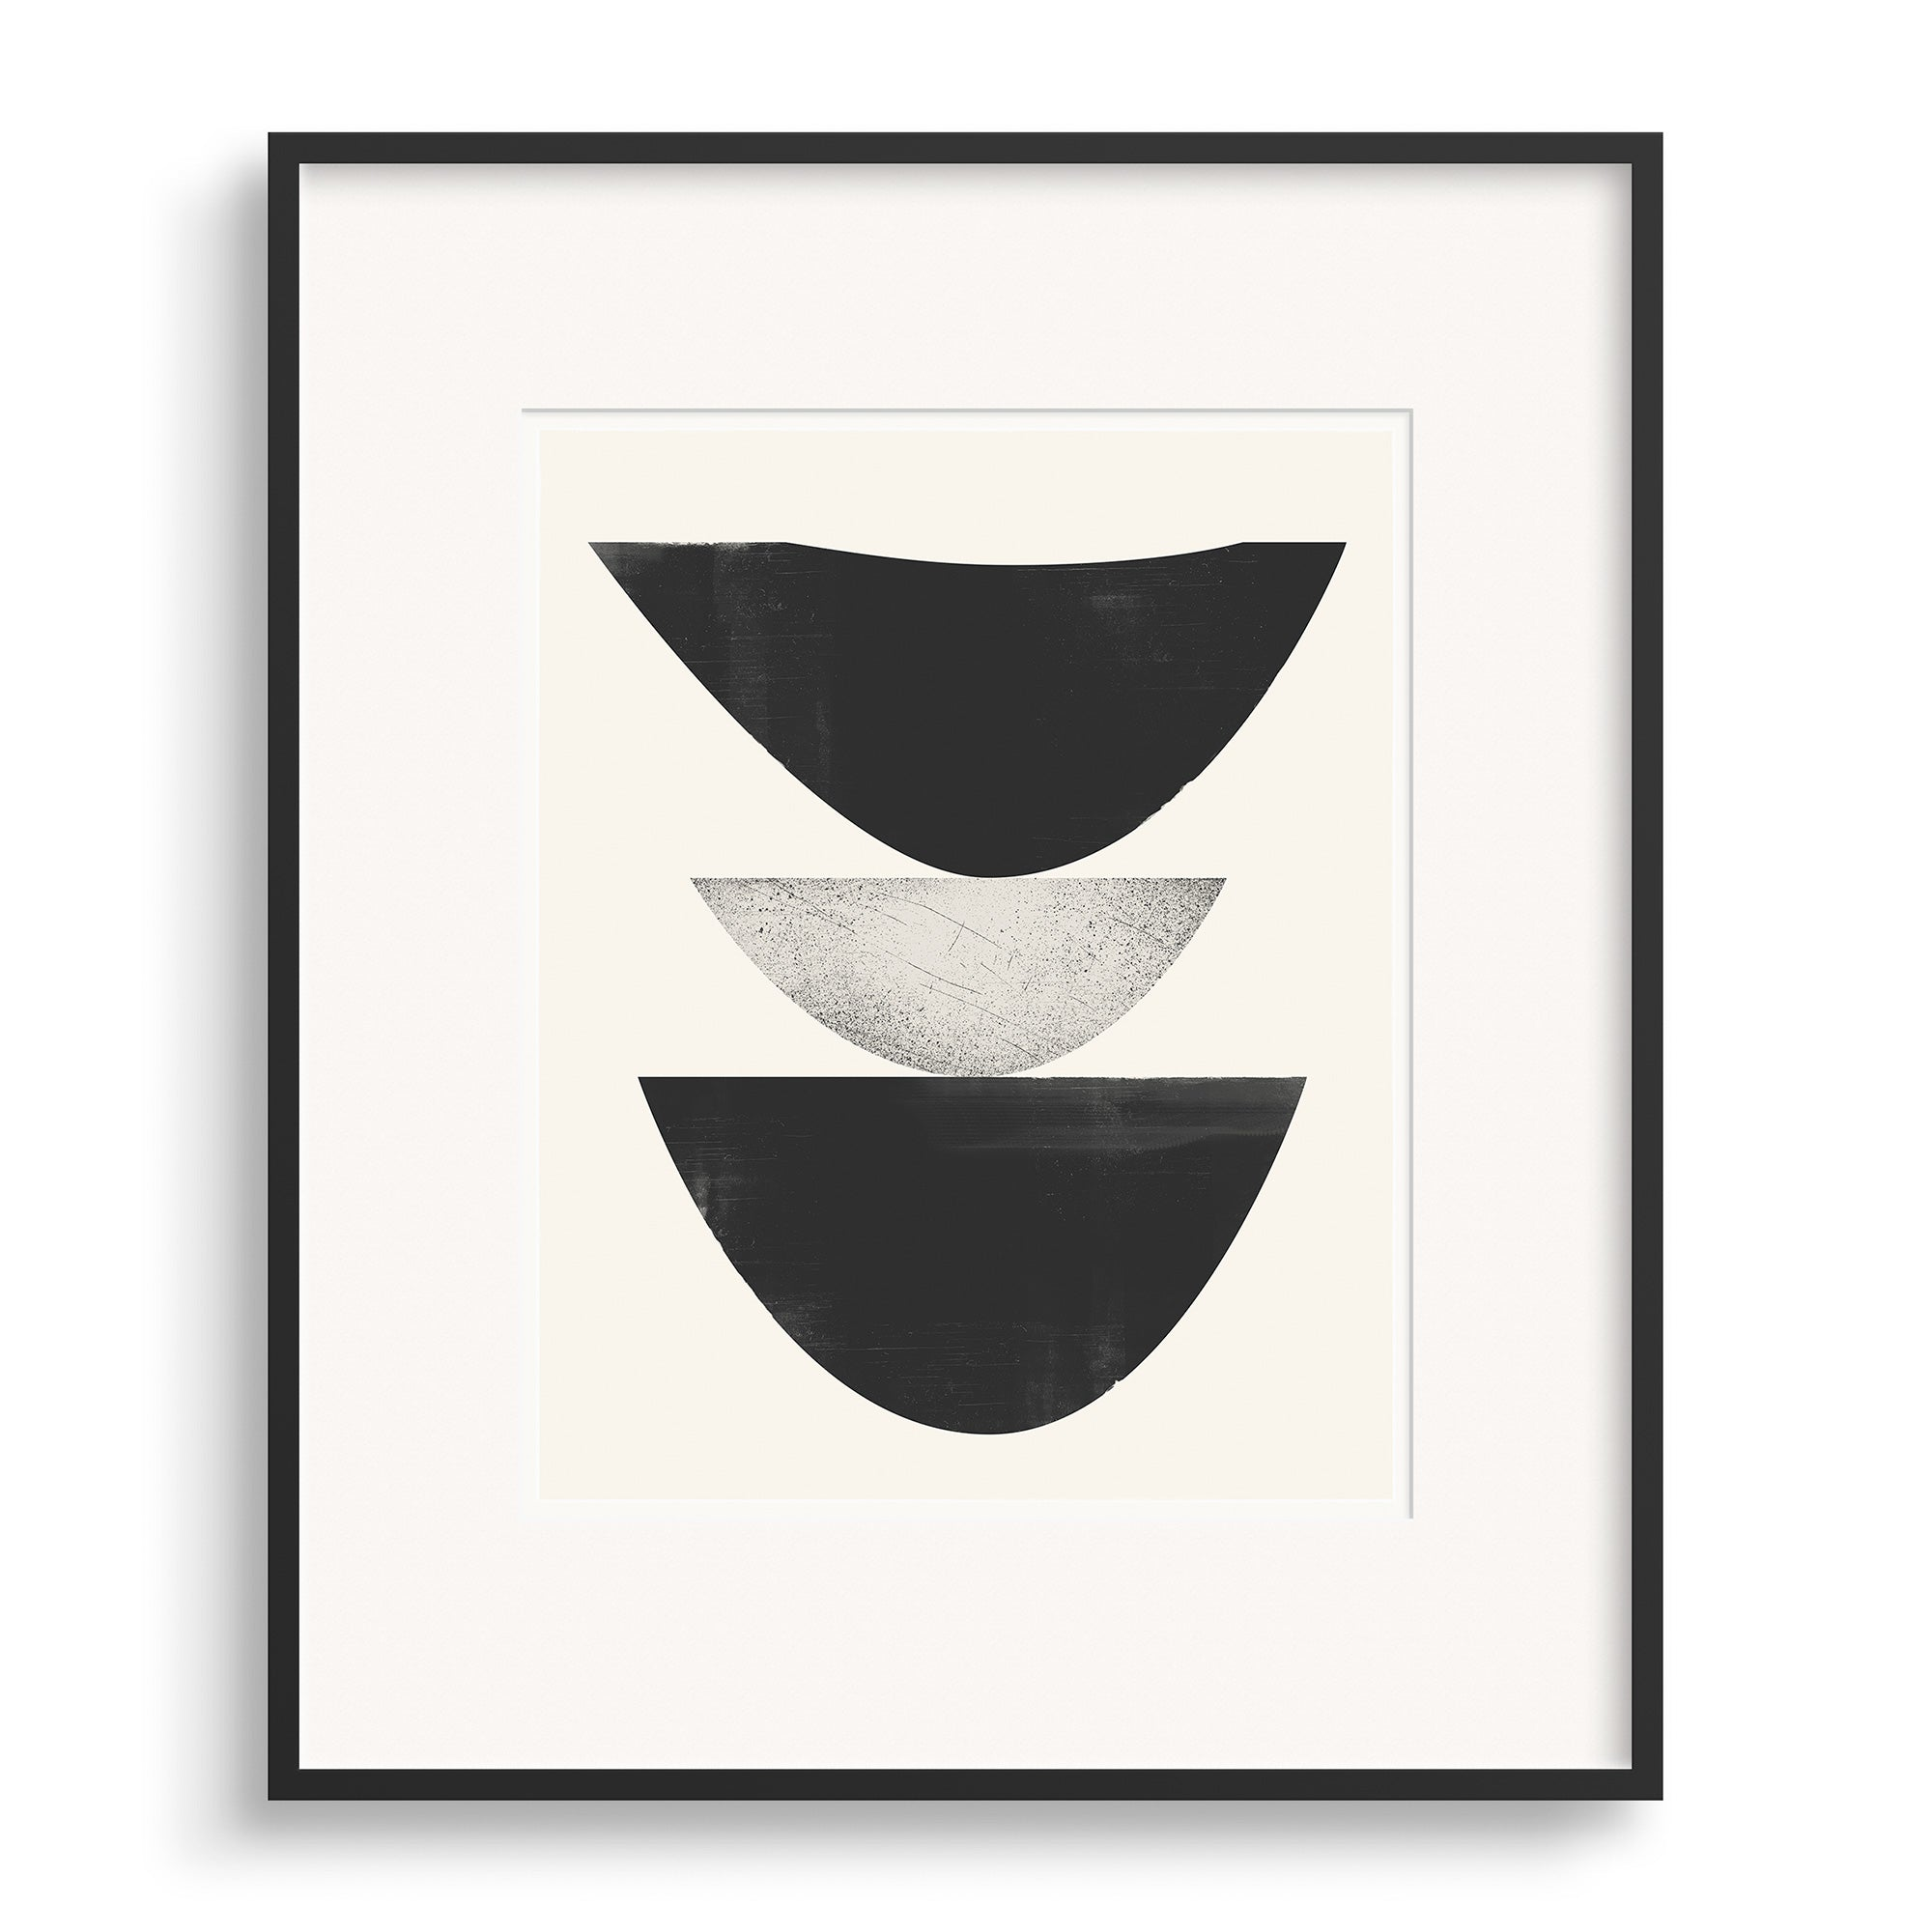 Black framed image of Cold Wave Graphic Print by Janet Taylor | Household Art.